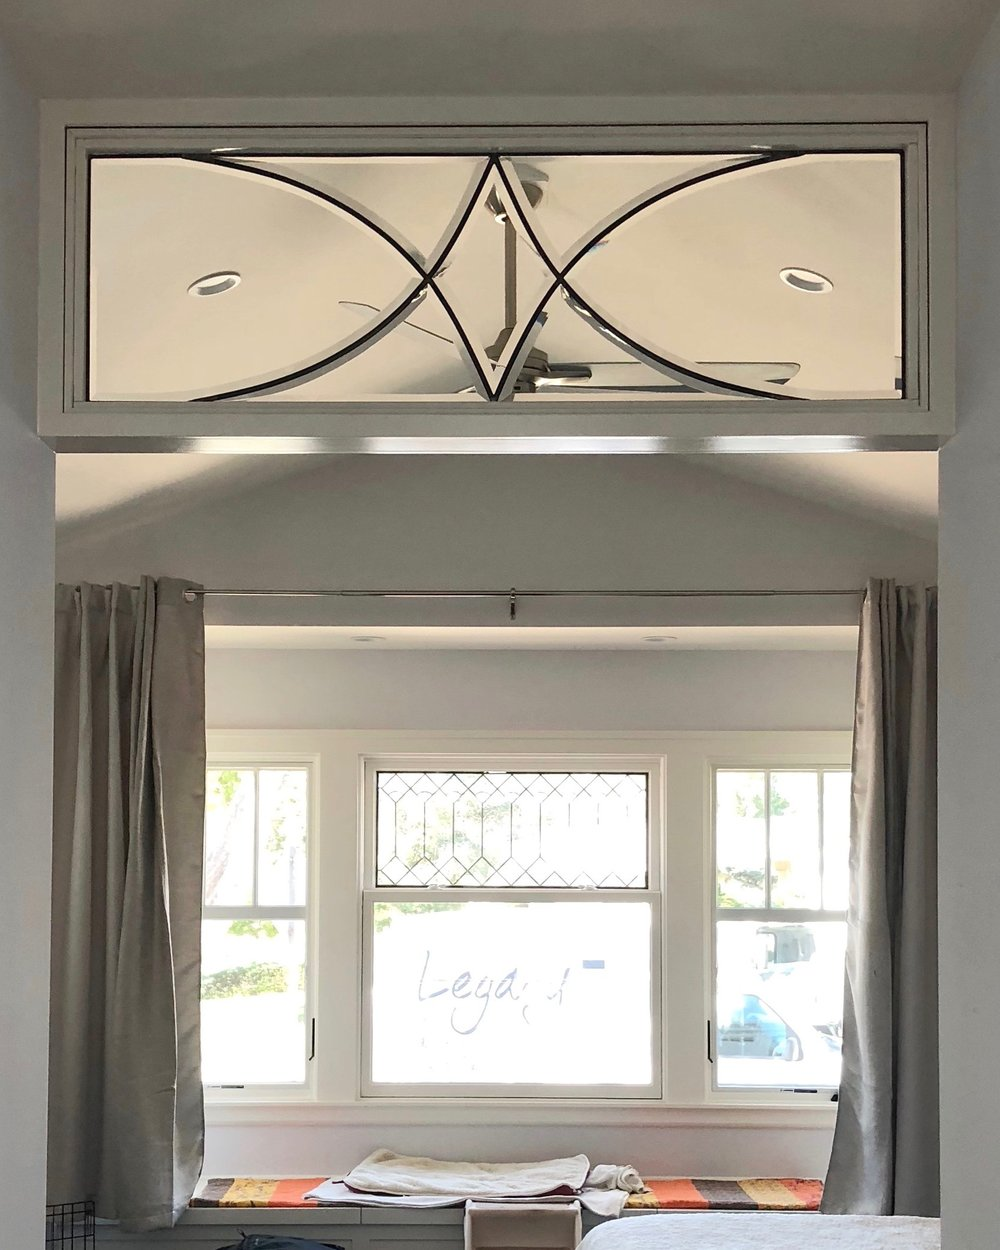 custom beveled leaded glass stained glass legacy glass studios california traiditional modern transitional design lehmann glass studios (1).jpg